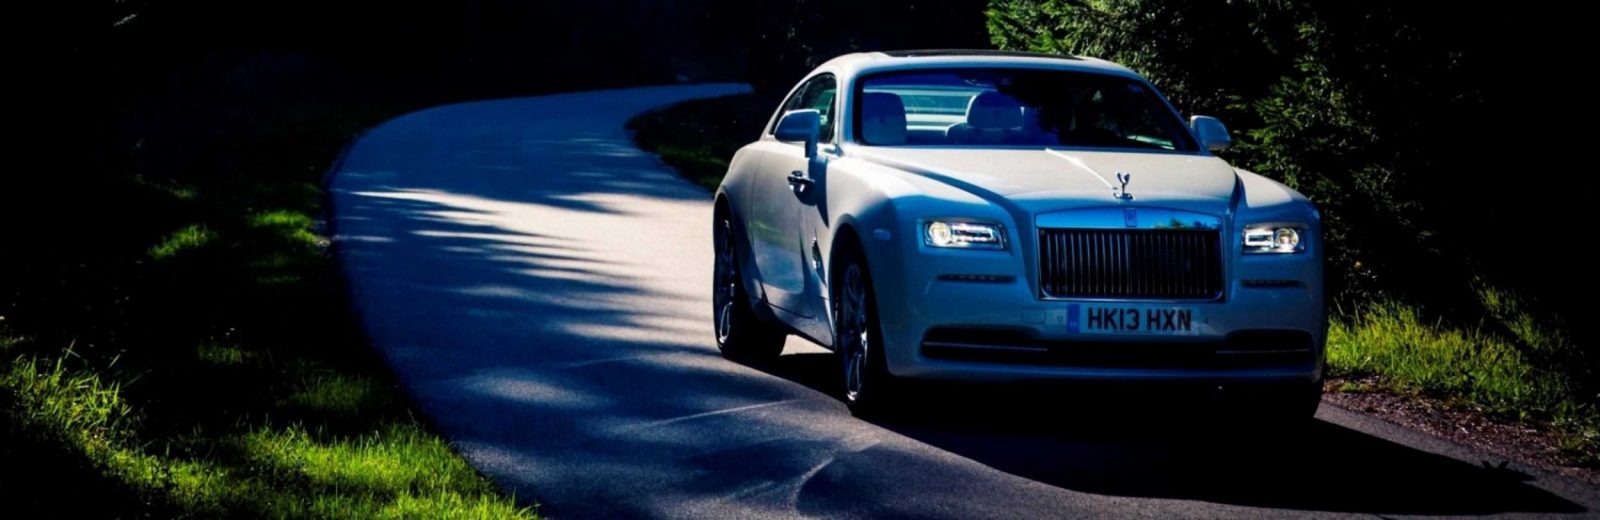 RR Wraith Carrara White Color Showcase CarRevsDaily8